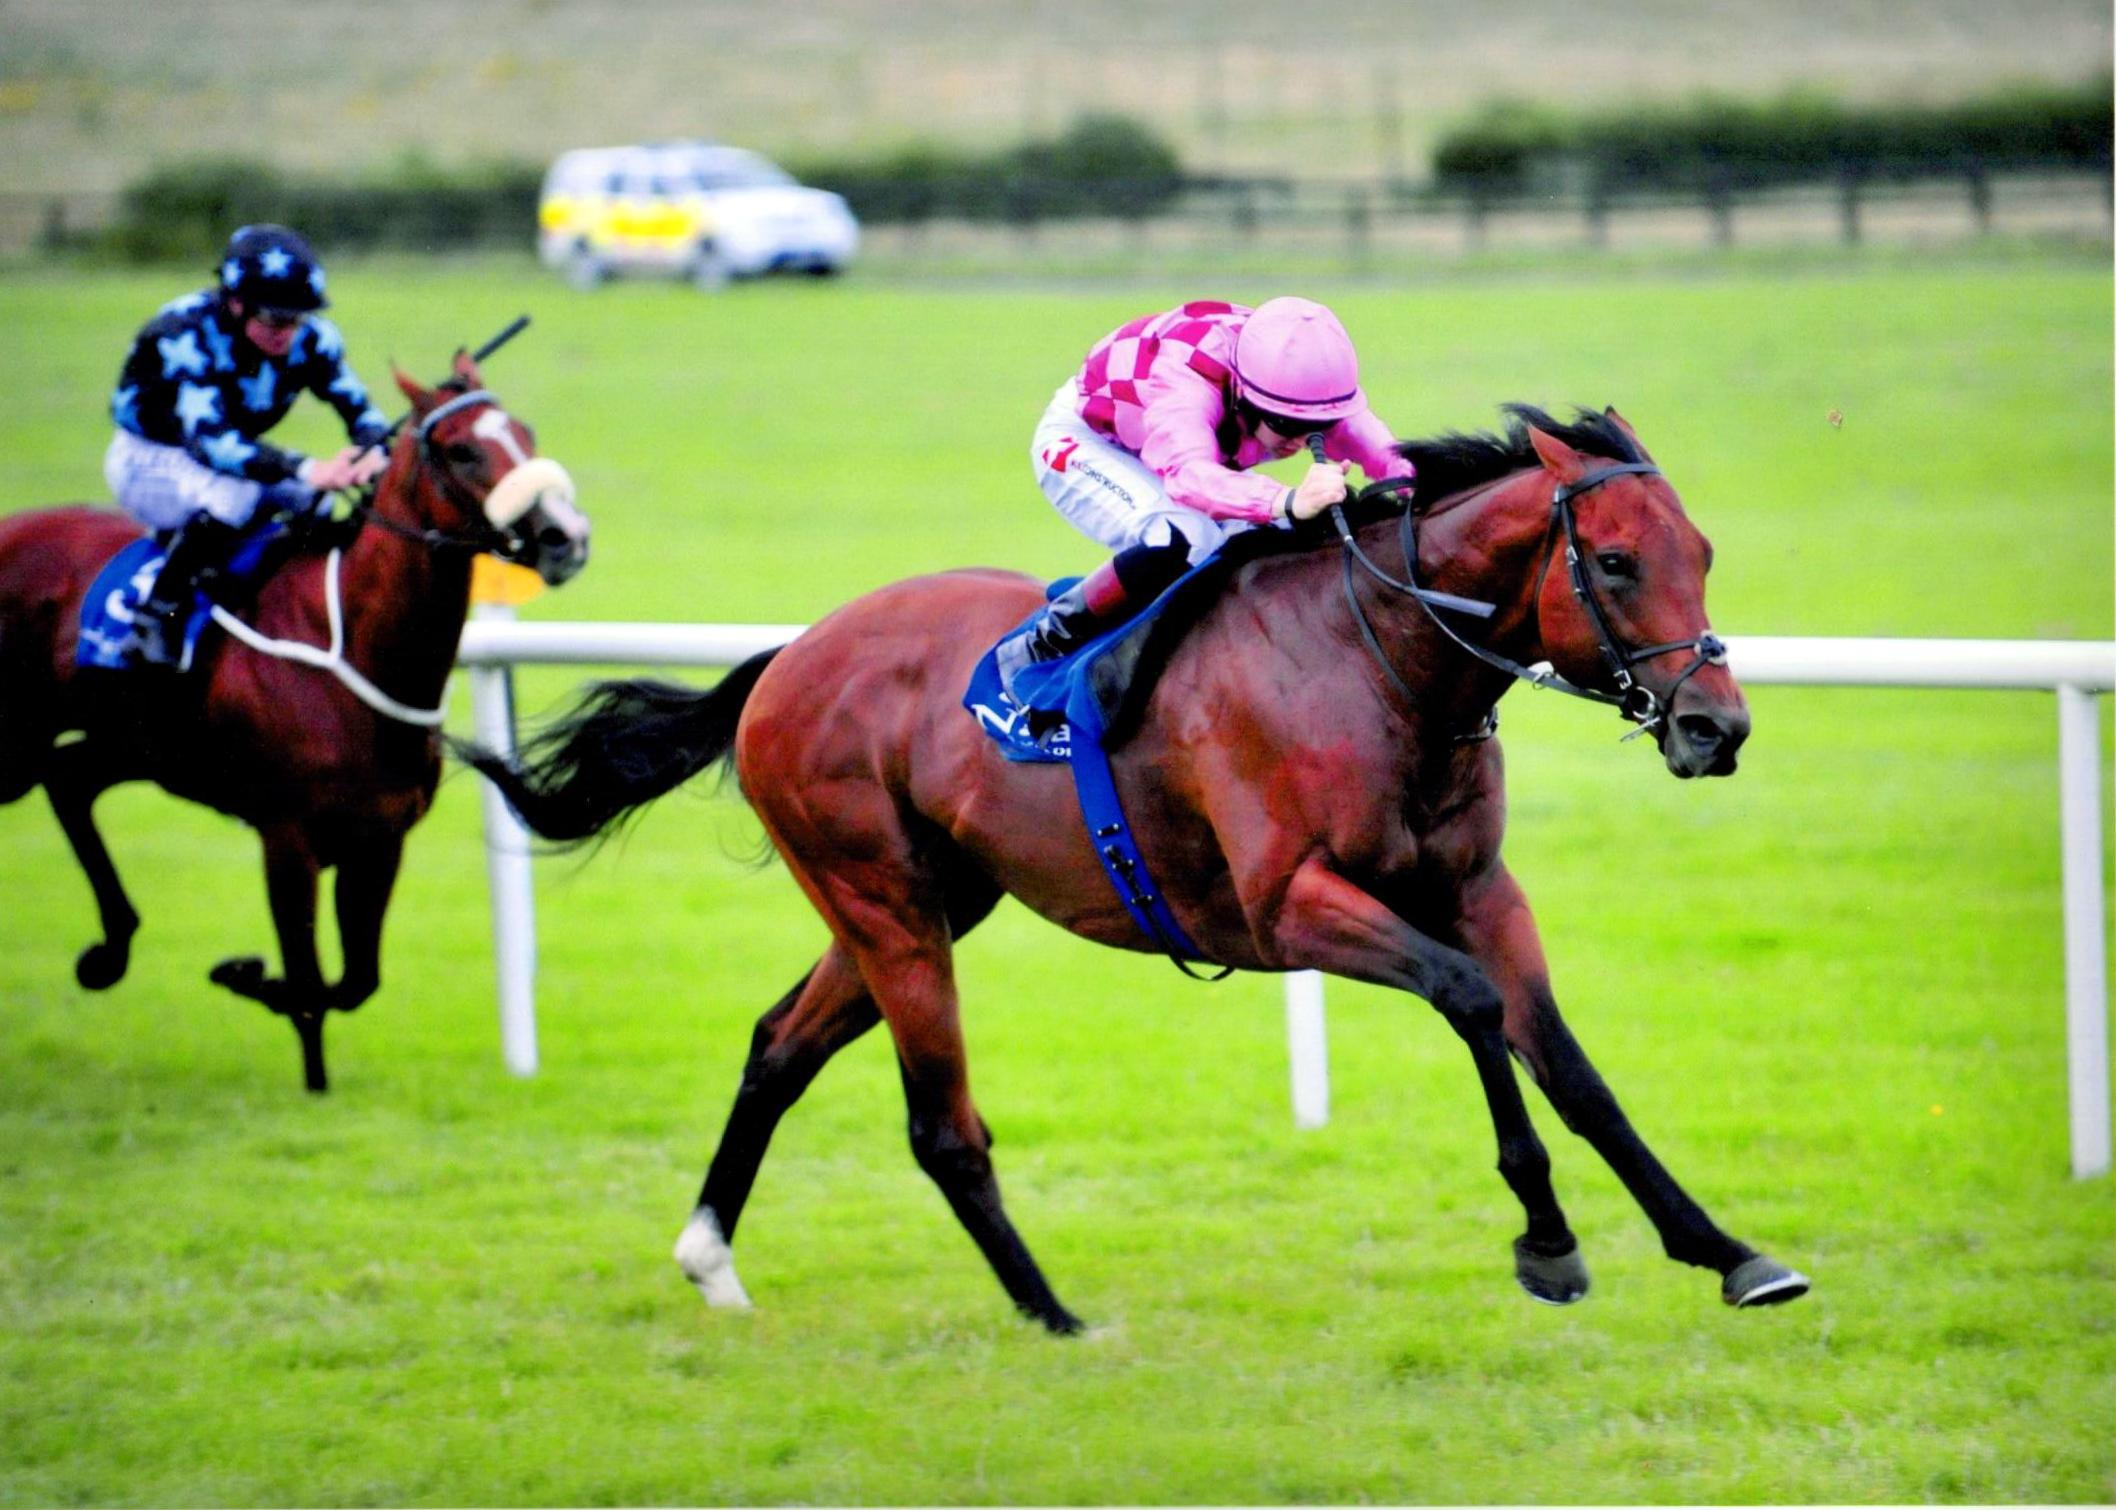 ENDLESS DRAMA impresses in winners race at Naas 13th July 2016